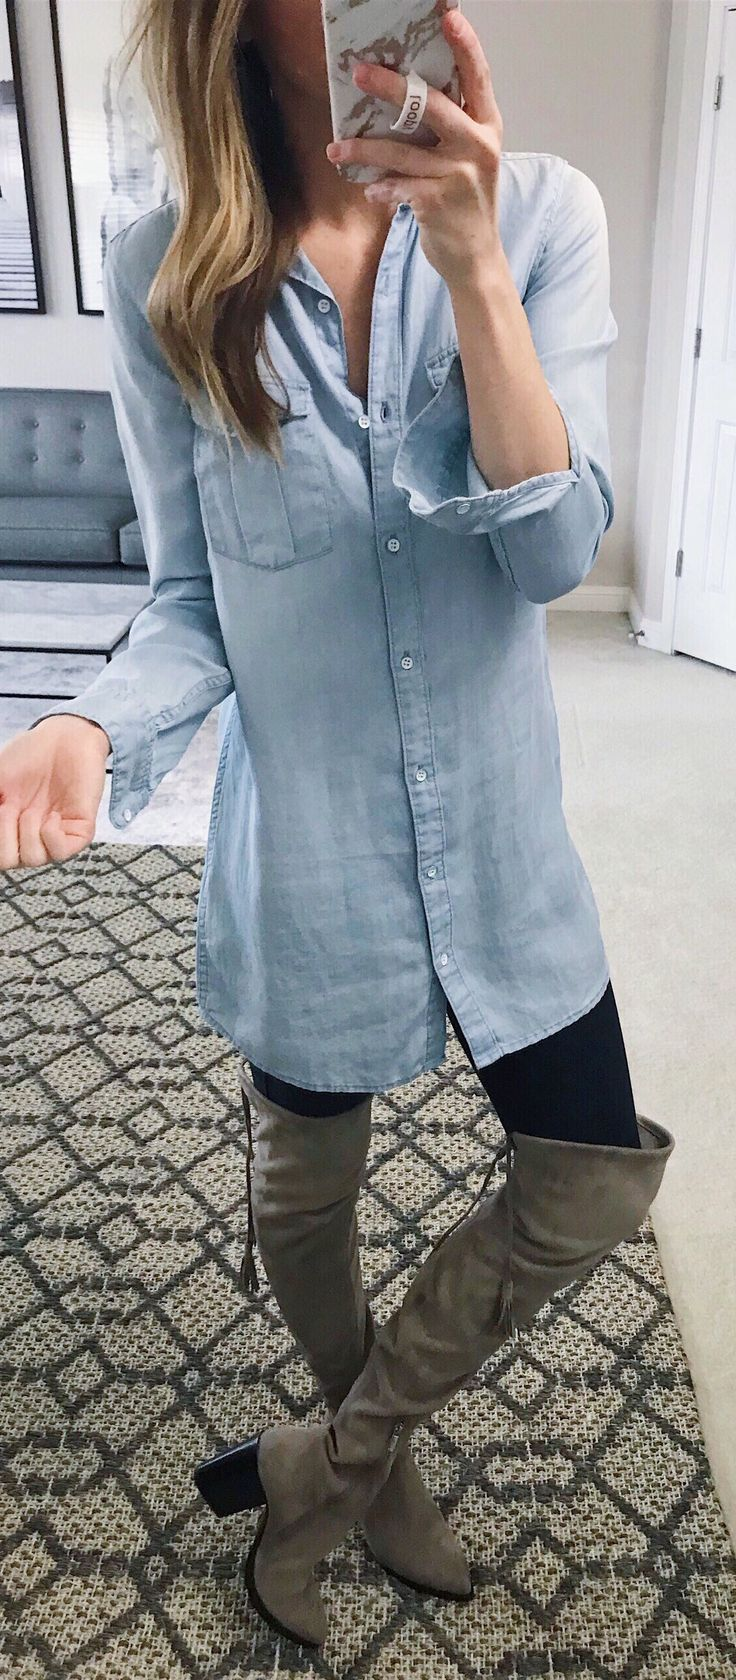 #winter #outfits blue dress shirt and pair of gray boots. Pic by @leeannebenjamin.